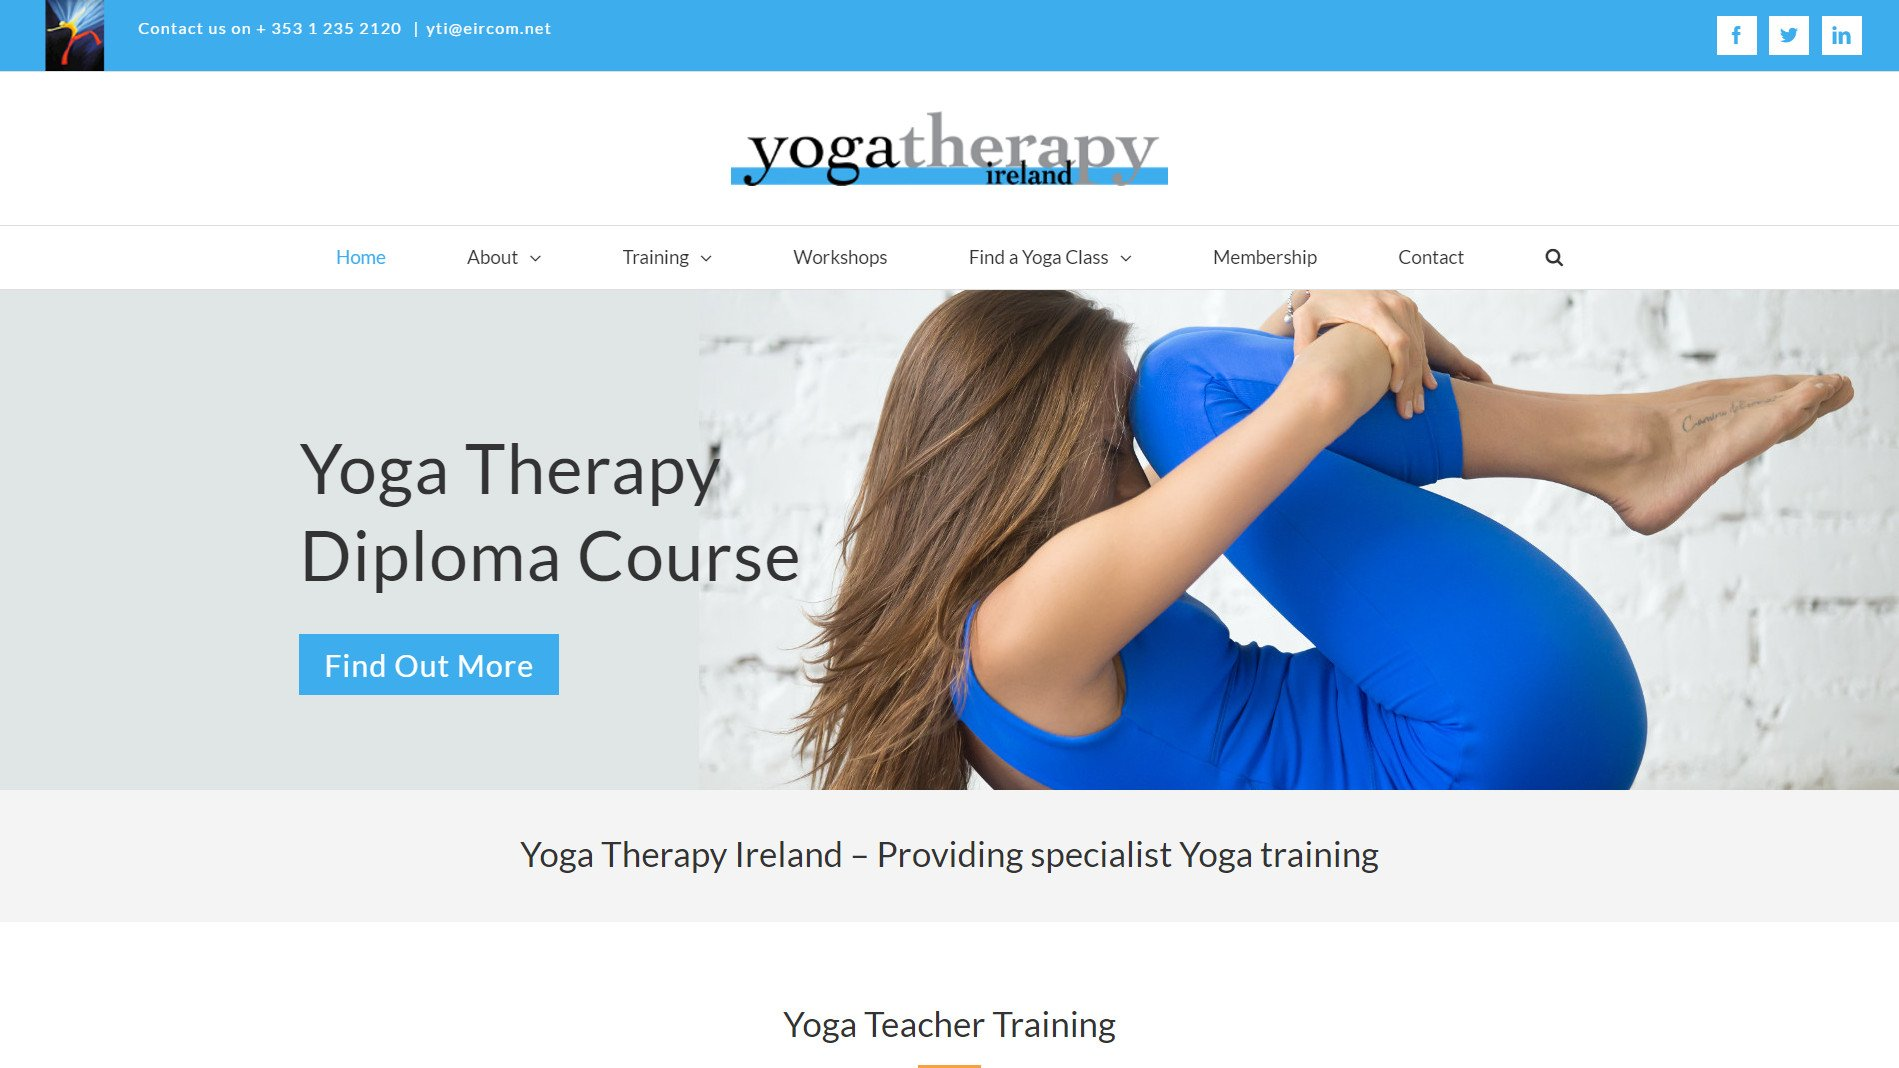 Website design for Yoga Therapy Ireland by Ridge Design - Featured Image